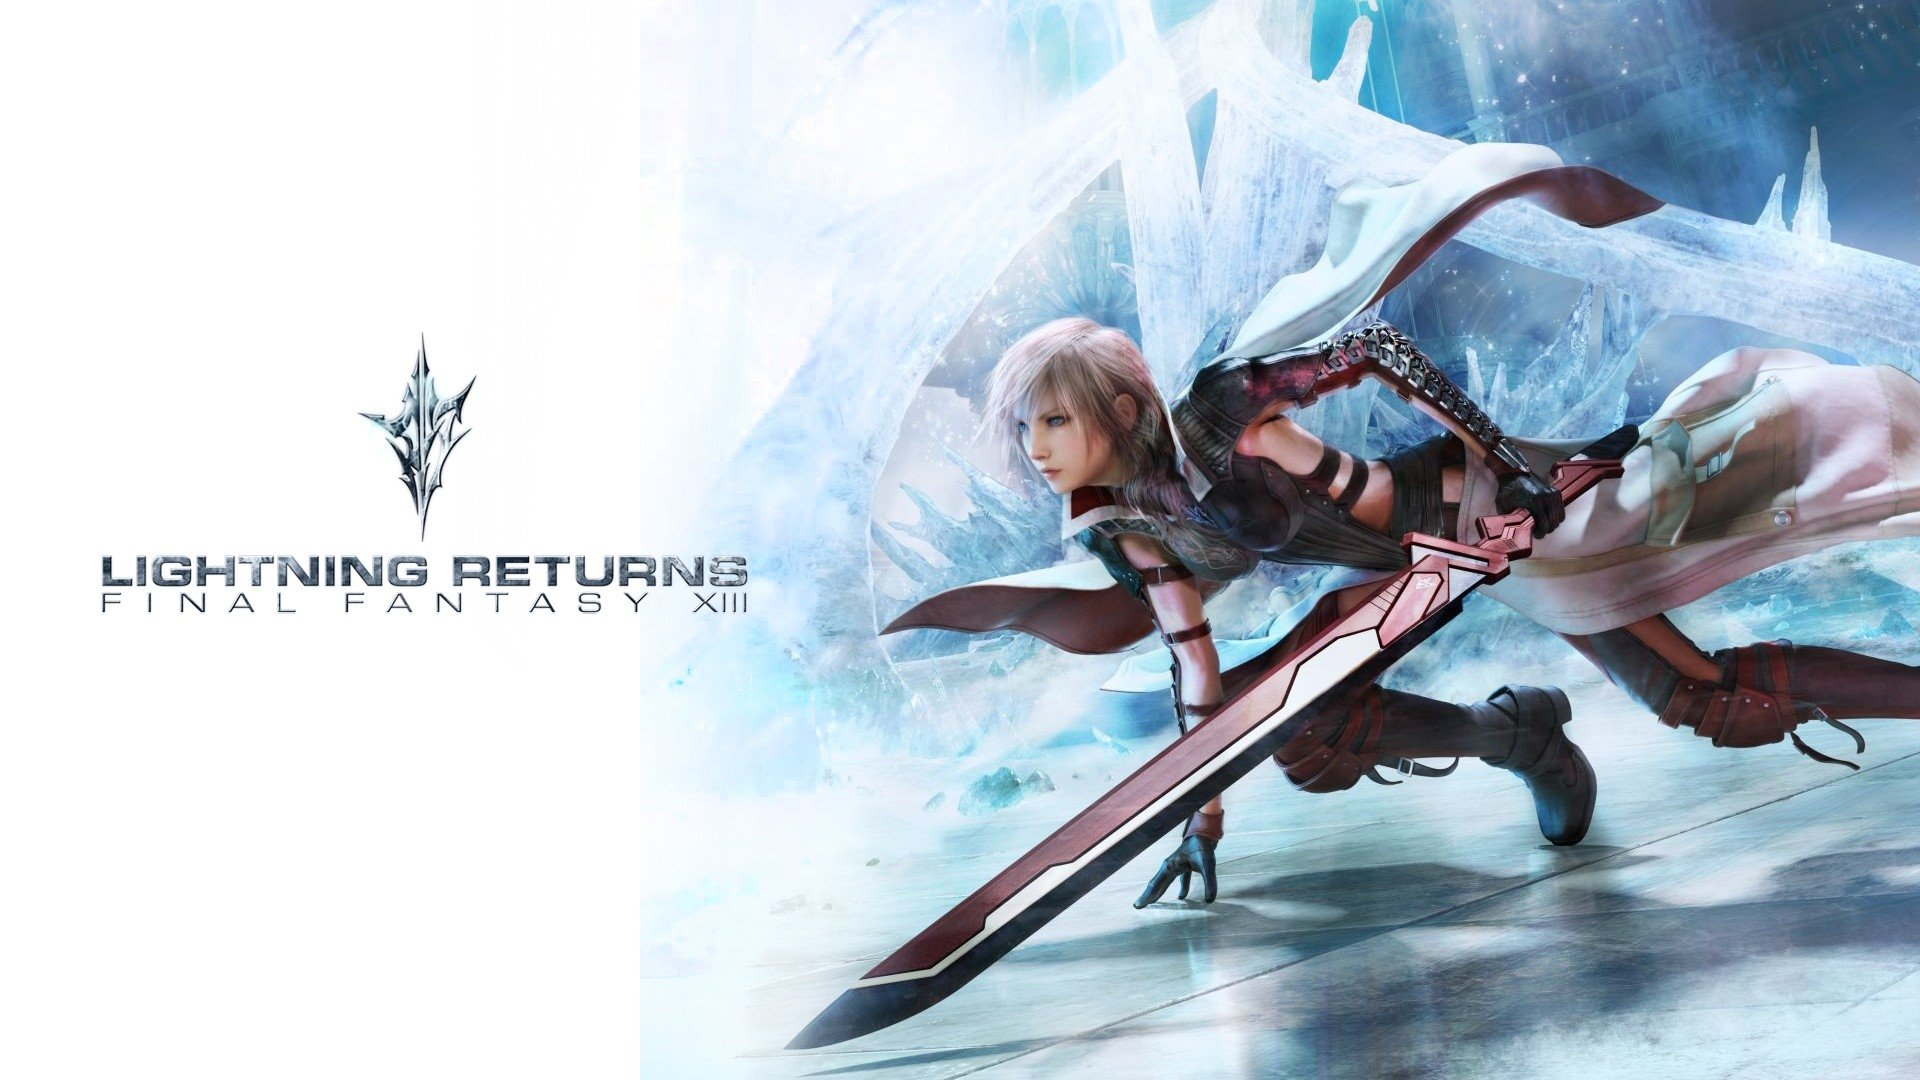 FINAL FANTASY XIII LIGHTING RETURNS PC TORRENT 🎮